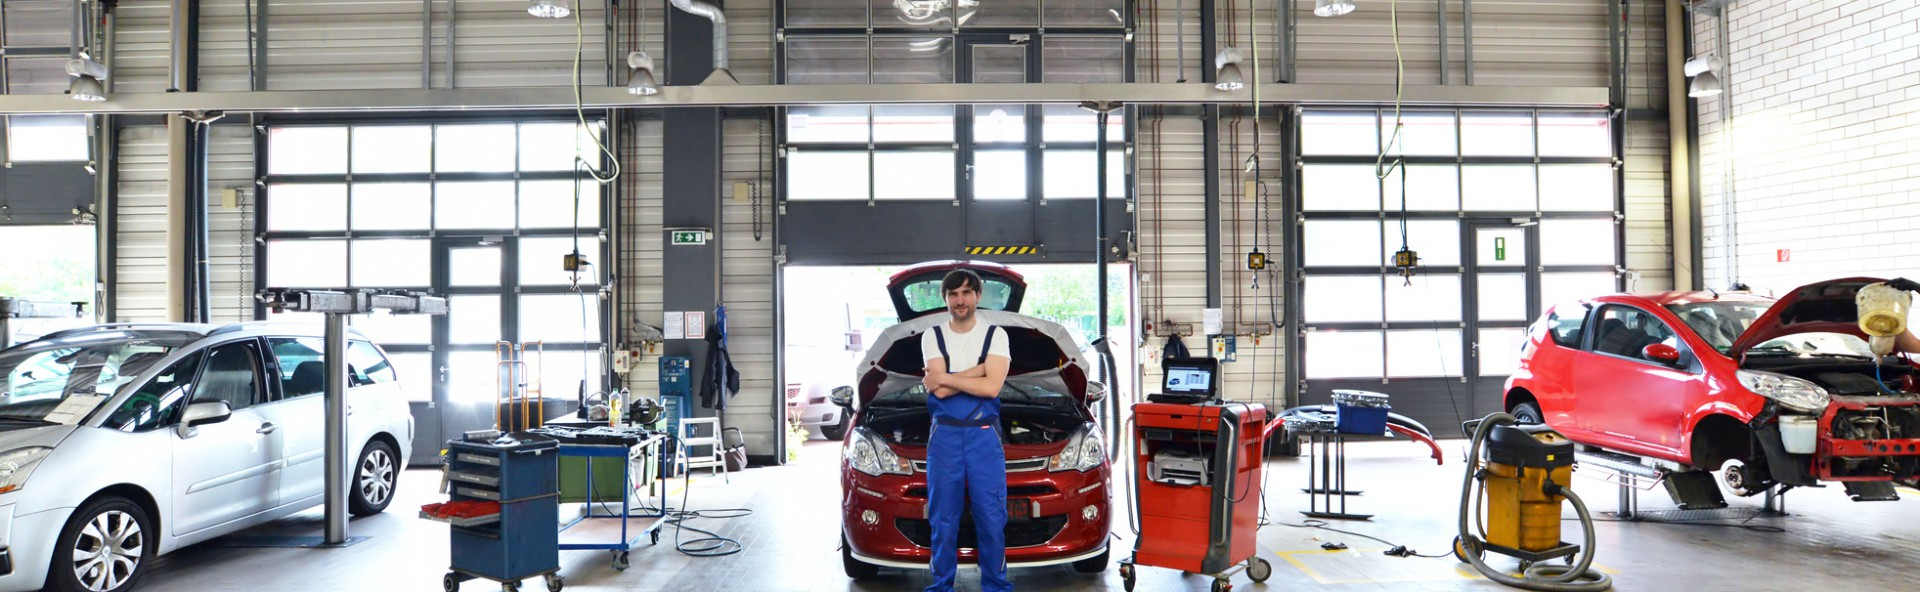 car mechanic in a garage with vehicles // moderne Autowerkstatt